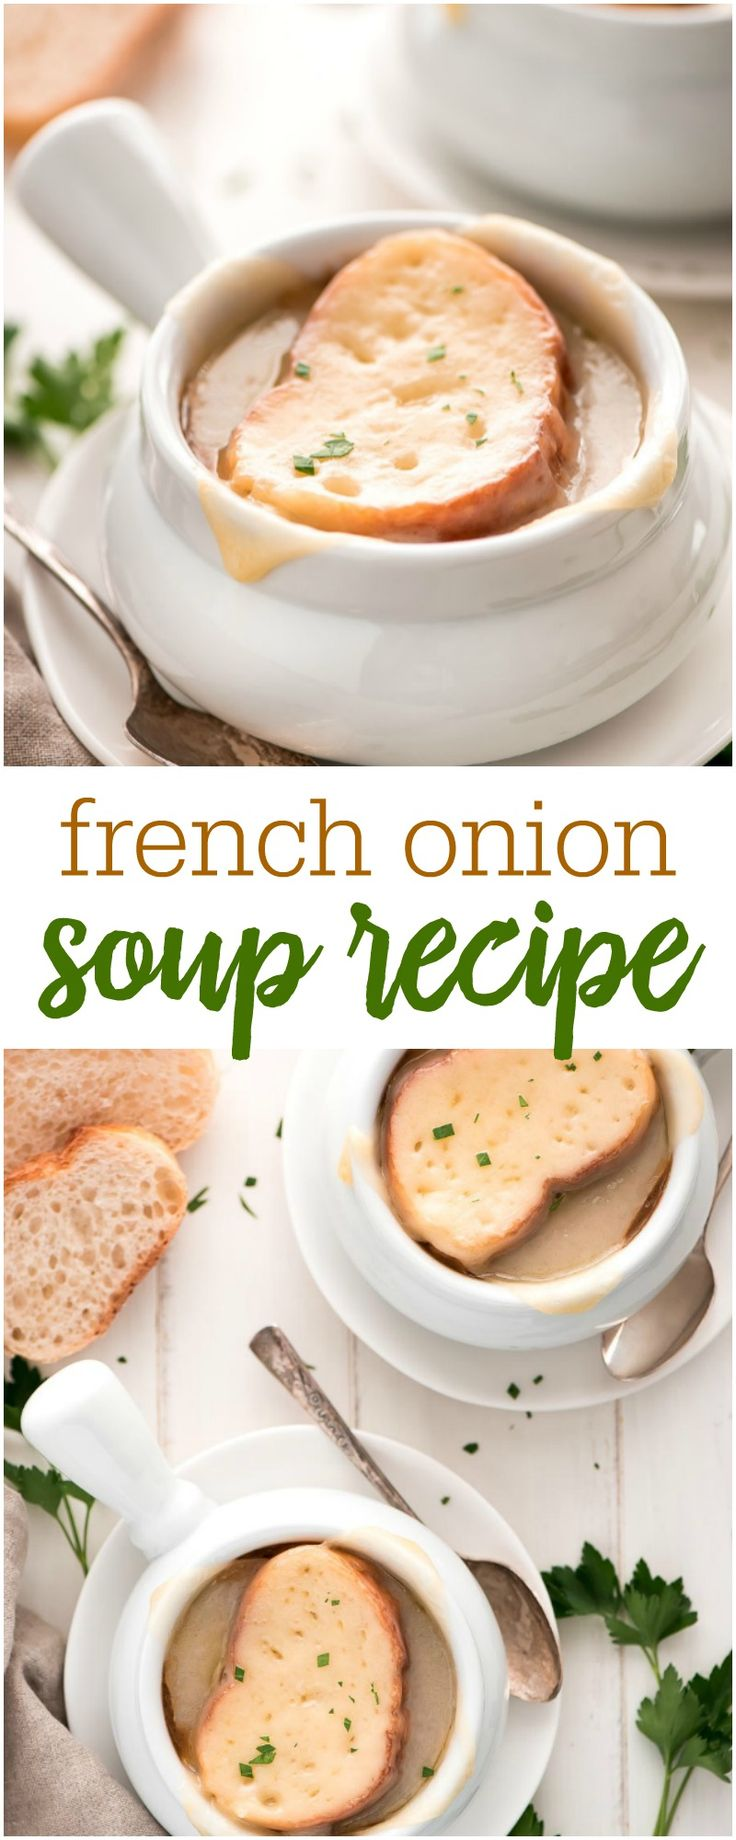 A simple and delicious French Onion Soup recipe. Perfectly served with french bread, this soup is always a favorite!